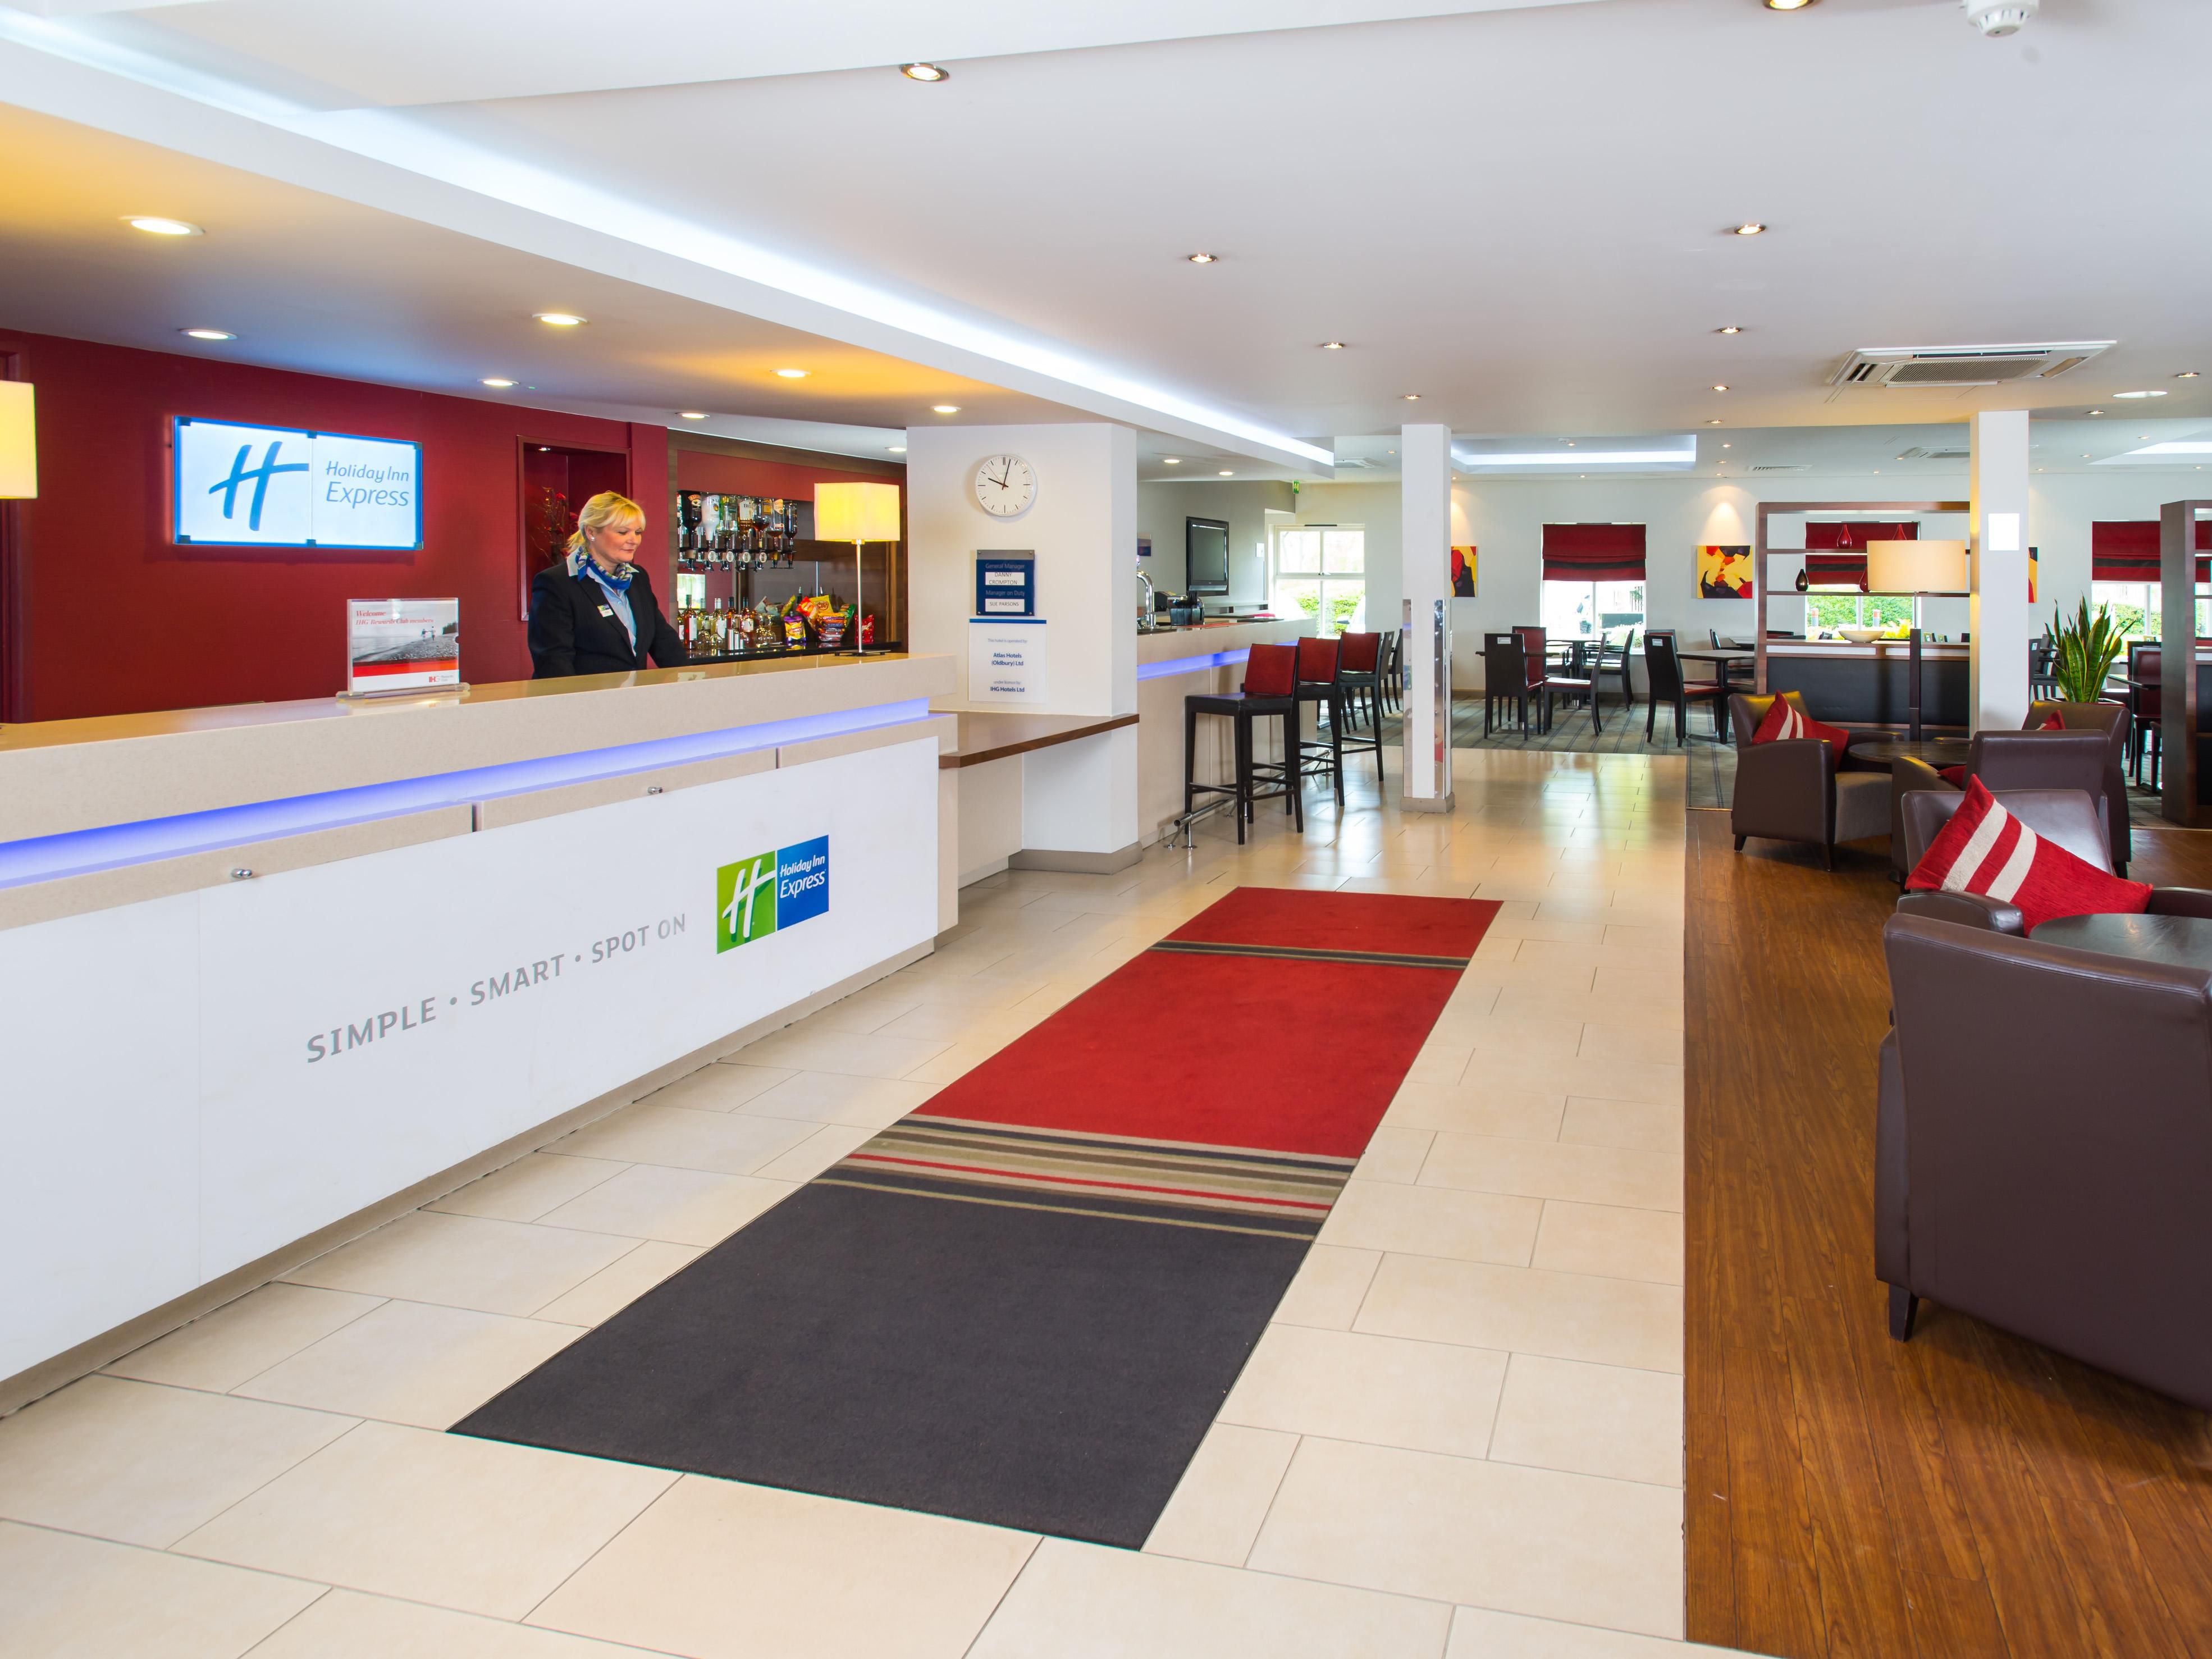 Welcome to Holiday Inn Express Birmingham Oldbury